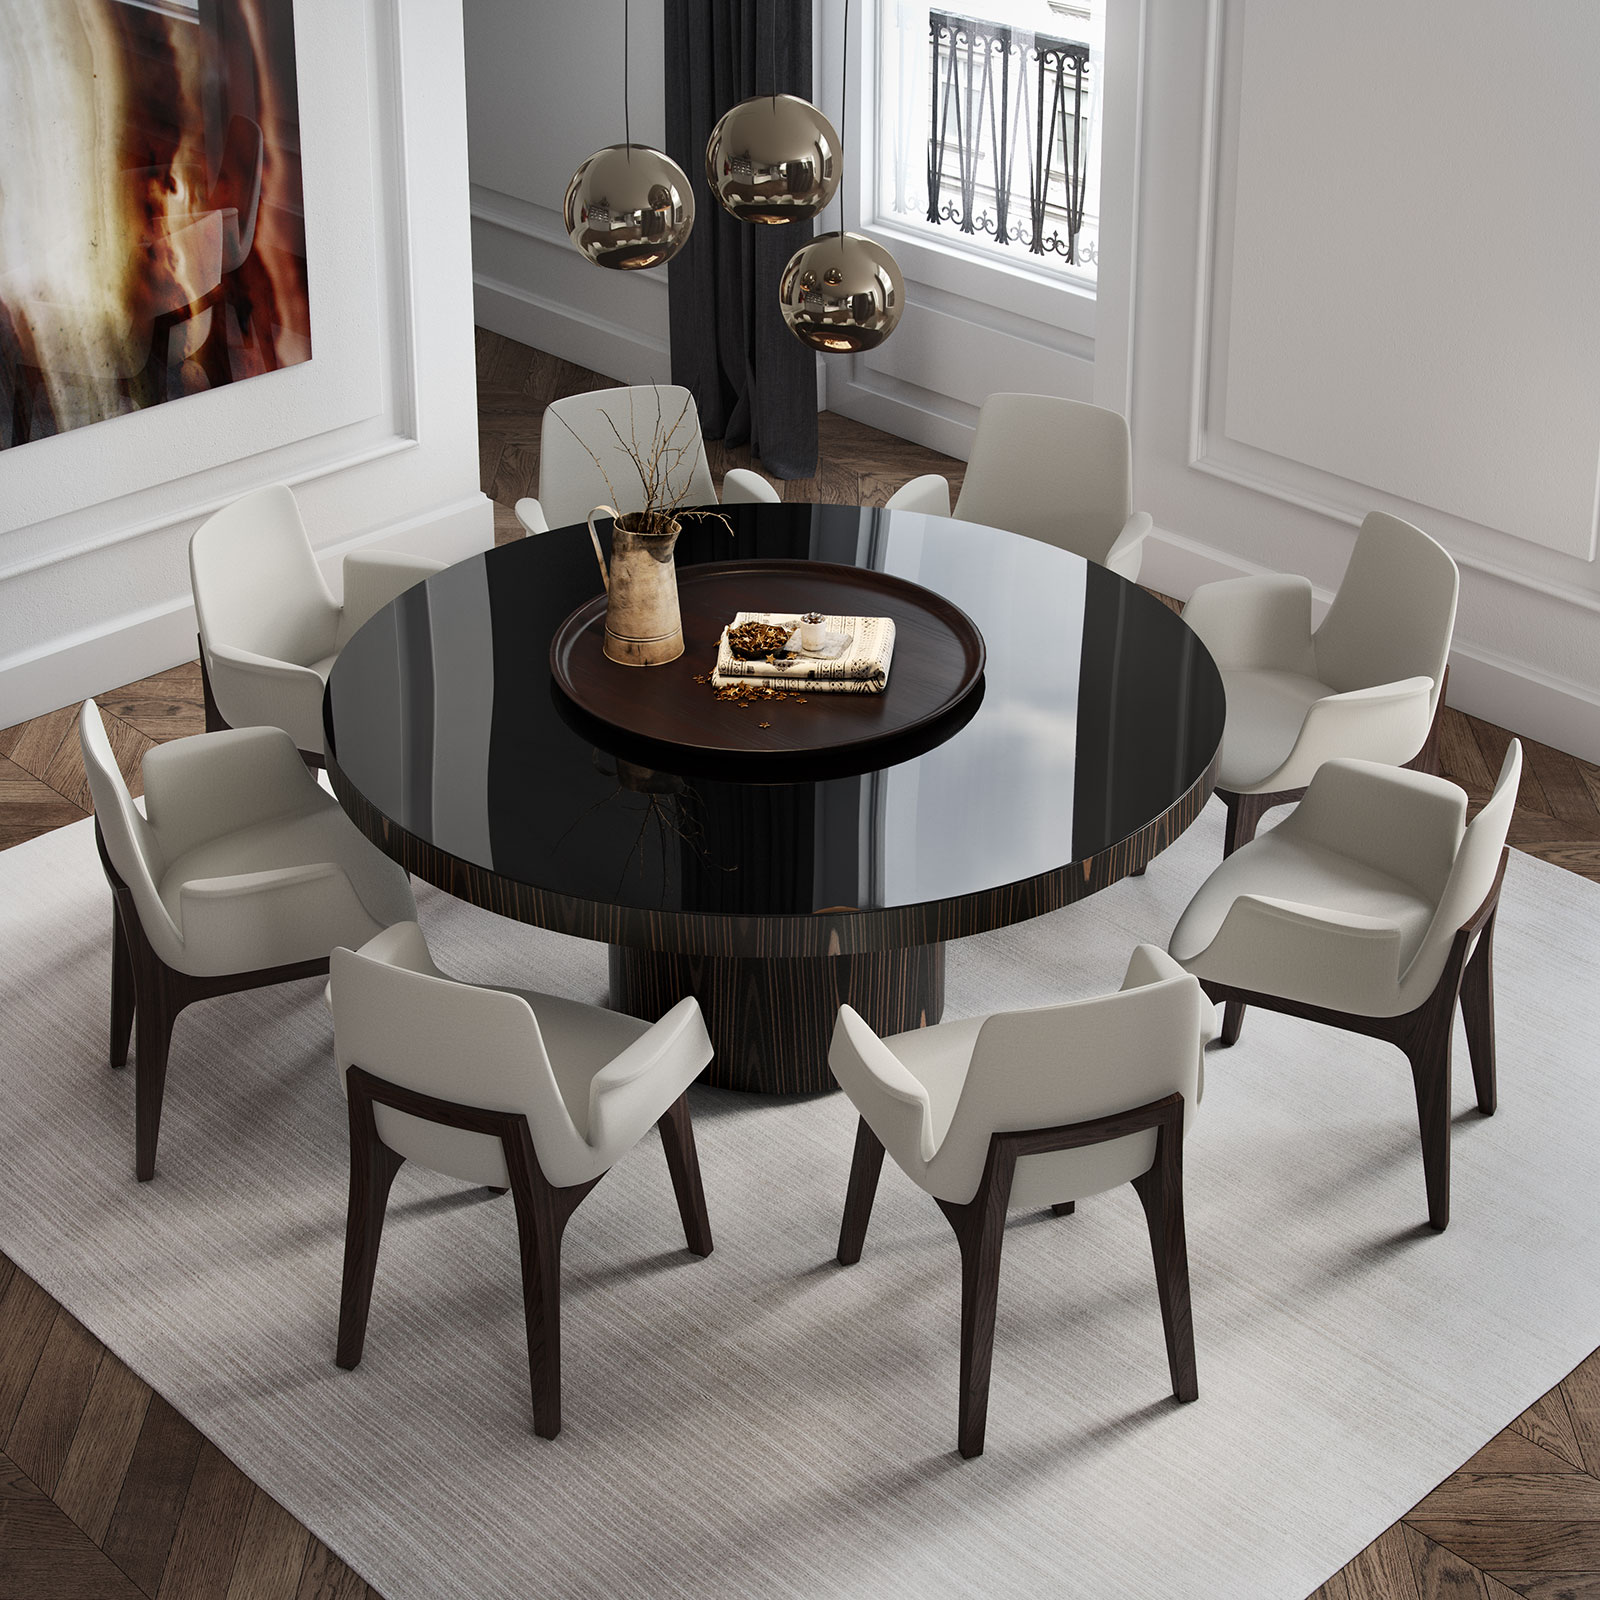 Dining Room Sets Modern: Berkeley Dining Collection